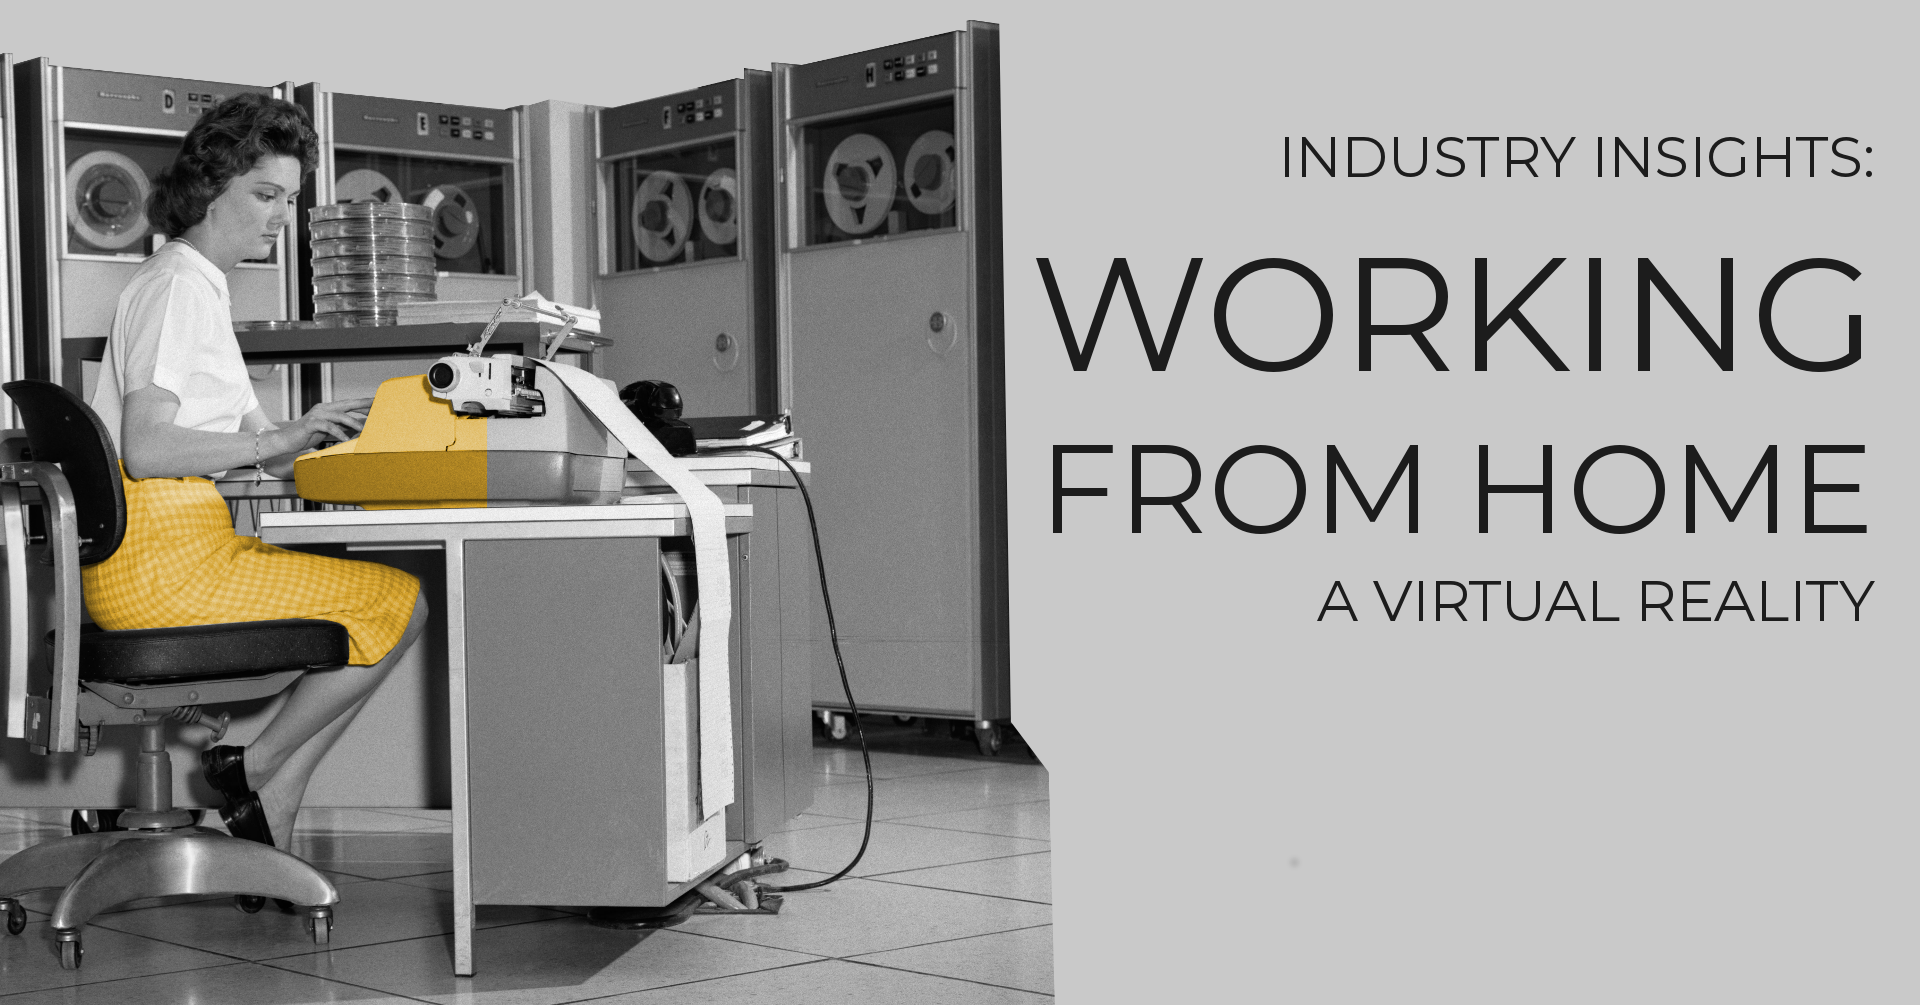 Industry insights: Working from home. A virtual reality